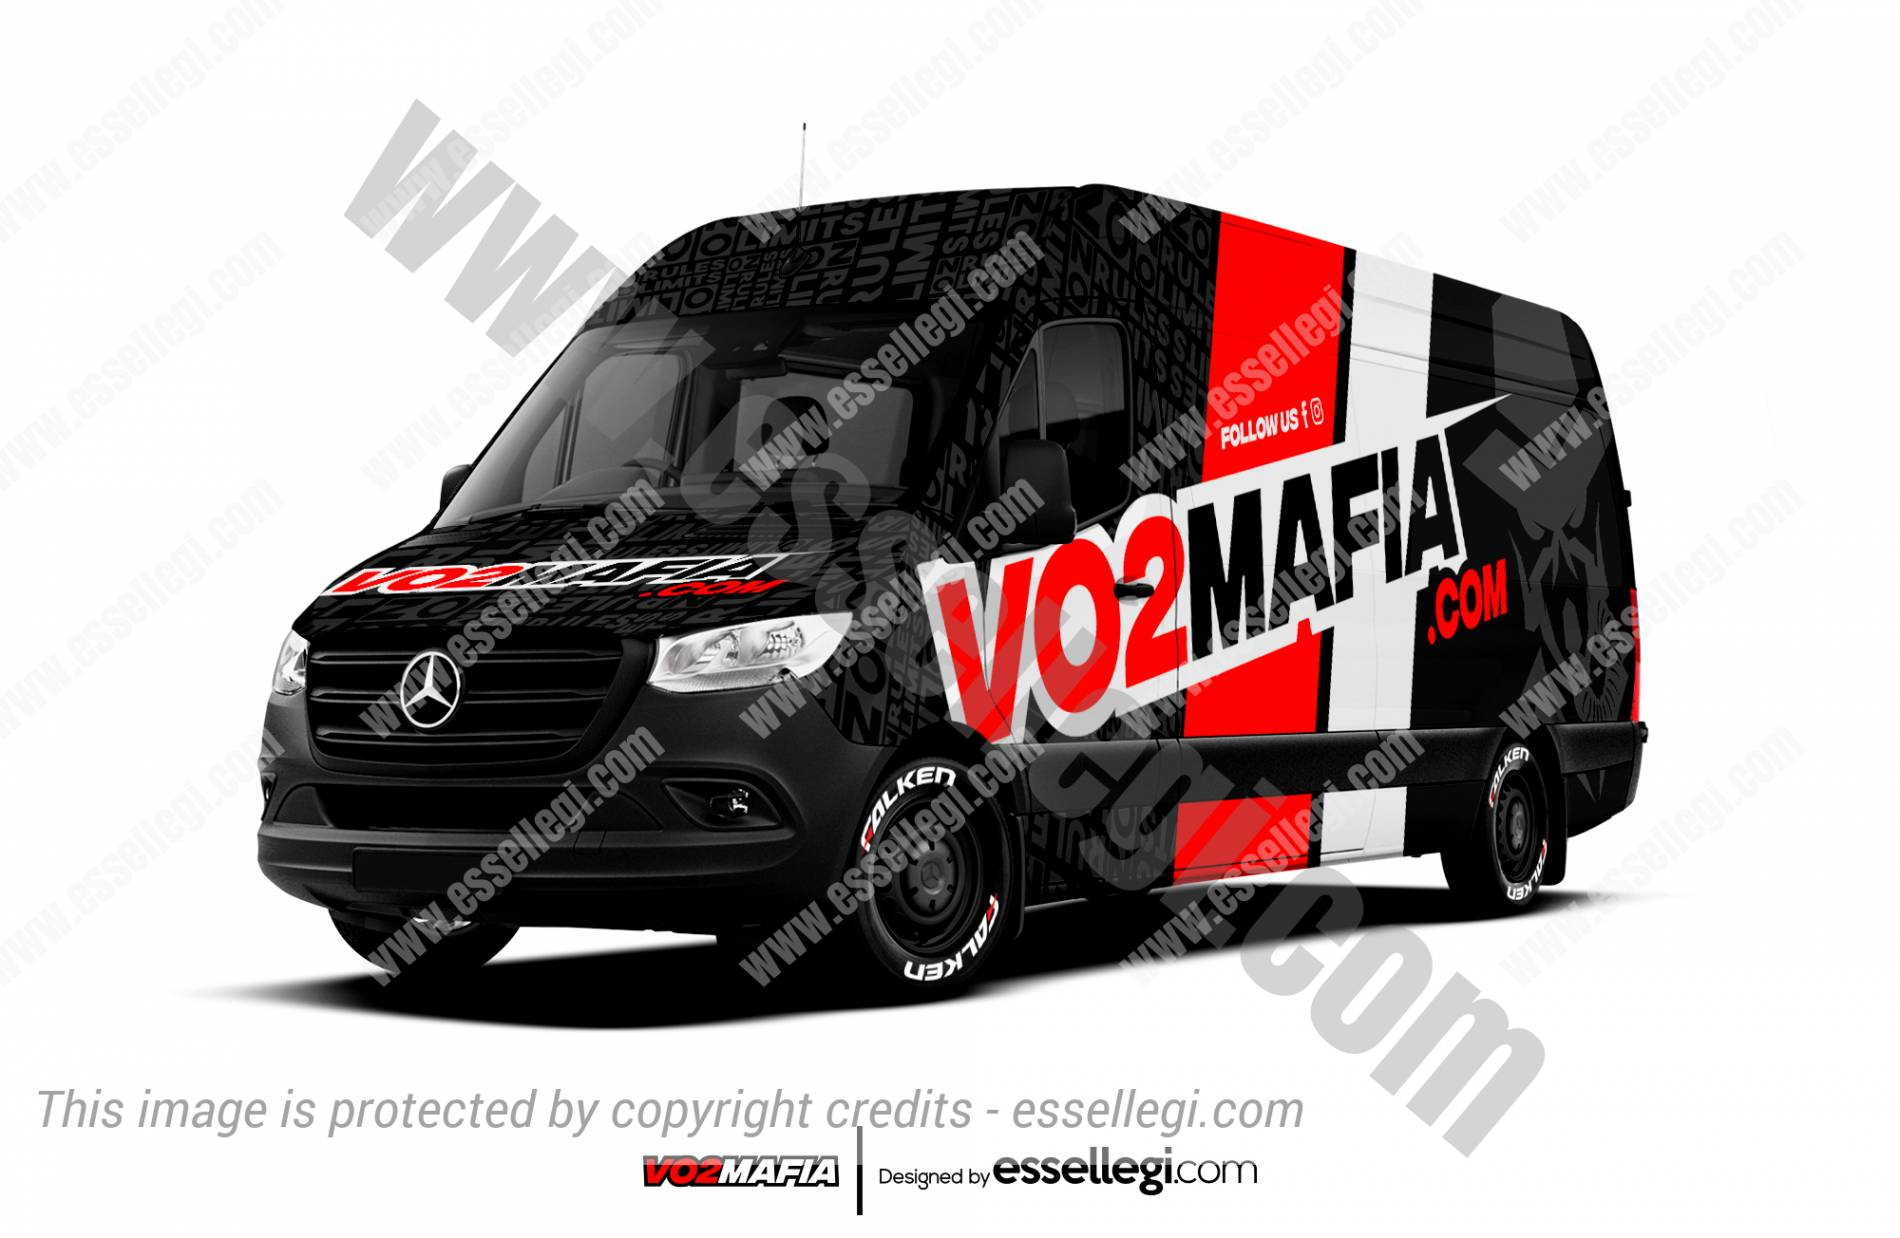 Mercedes Sprinter Wrap Design. Mercedes Sprinter Custom Wrap | Van Wrap Design by Essellegi. Van Signs, Van Signage, Van Wrapping, Van Signwriting, Van Wrap Designer, Signs for Van, Van Logo, Van Graphic by Essellegi.